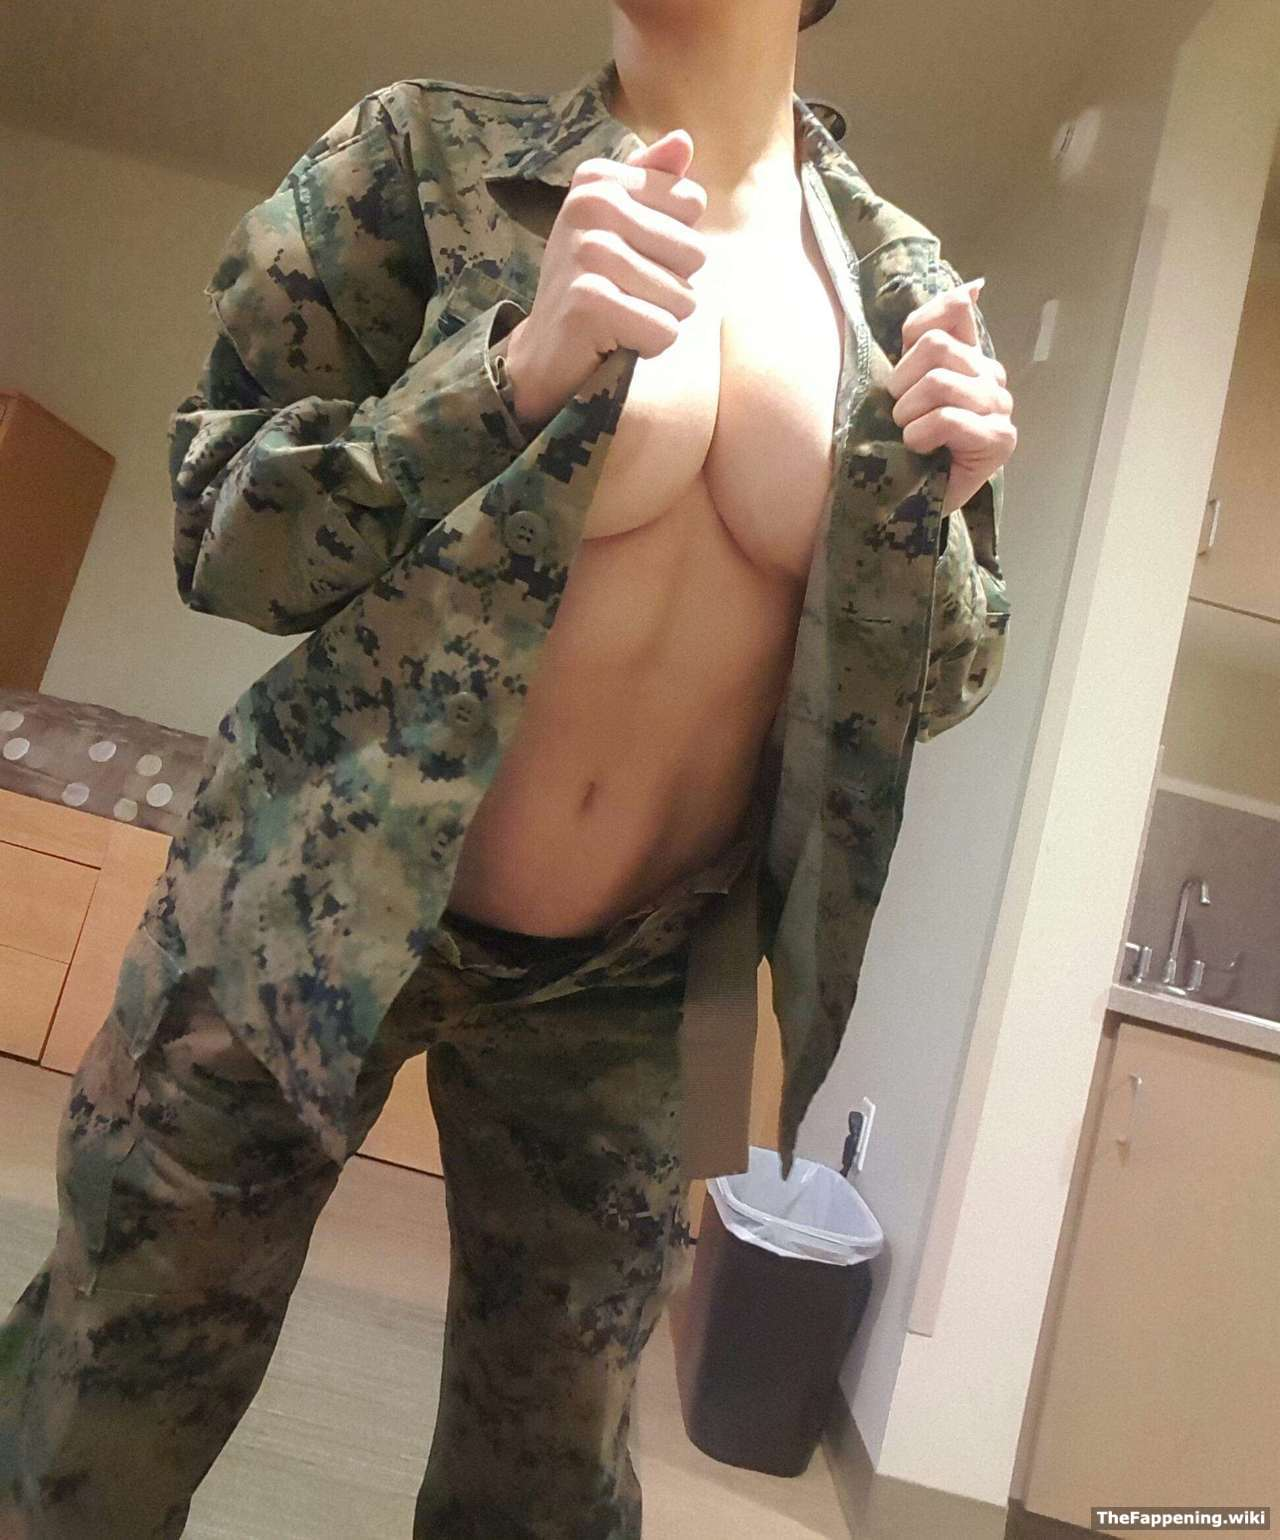 USA Marines naked photo scandal involves all branches of military. Men  fucking military Women on camera and sharing photos and videos.